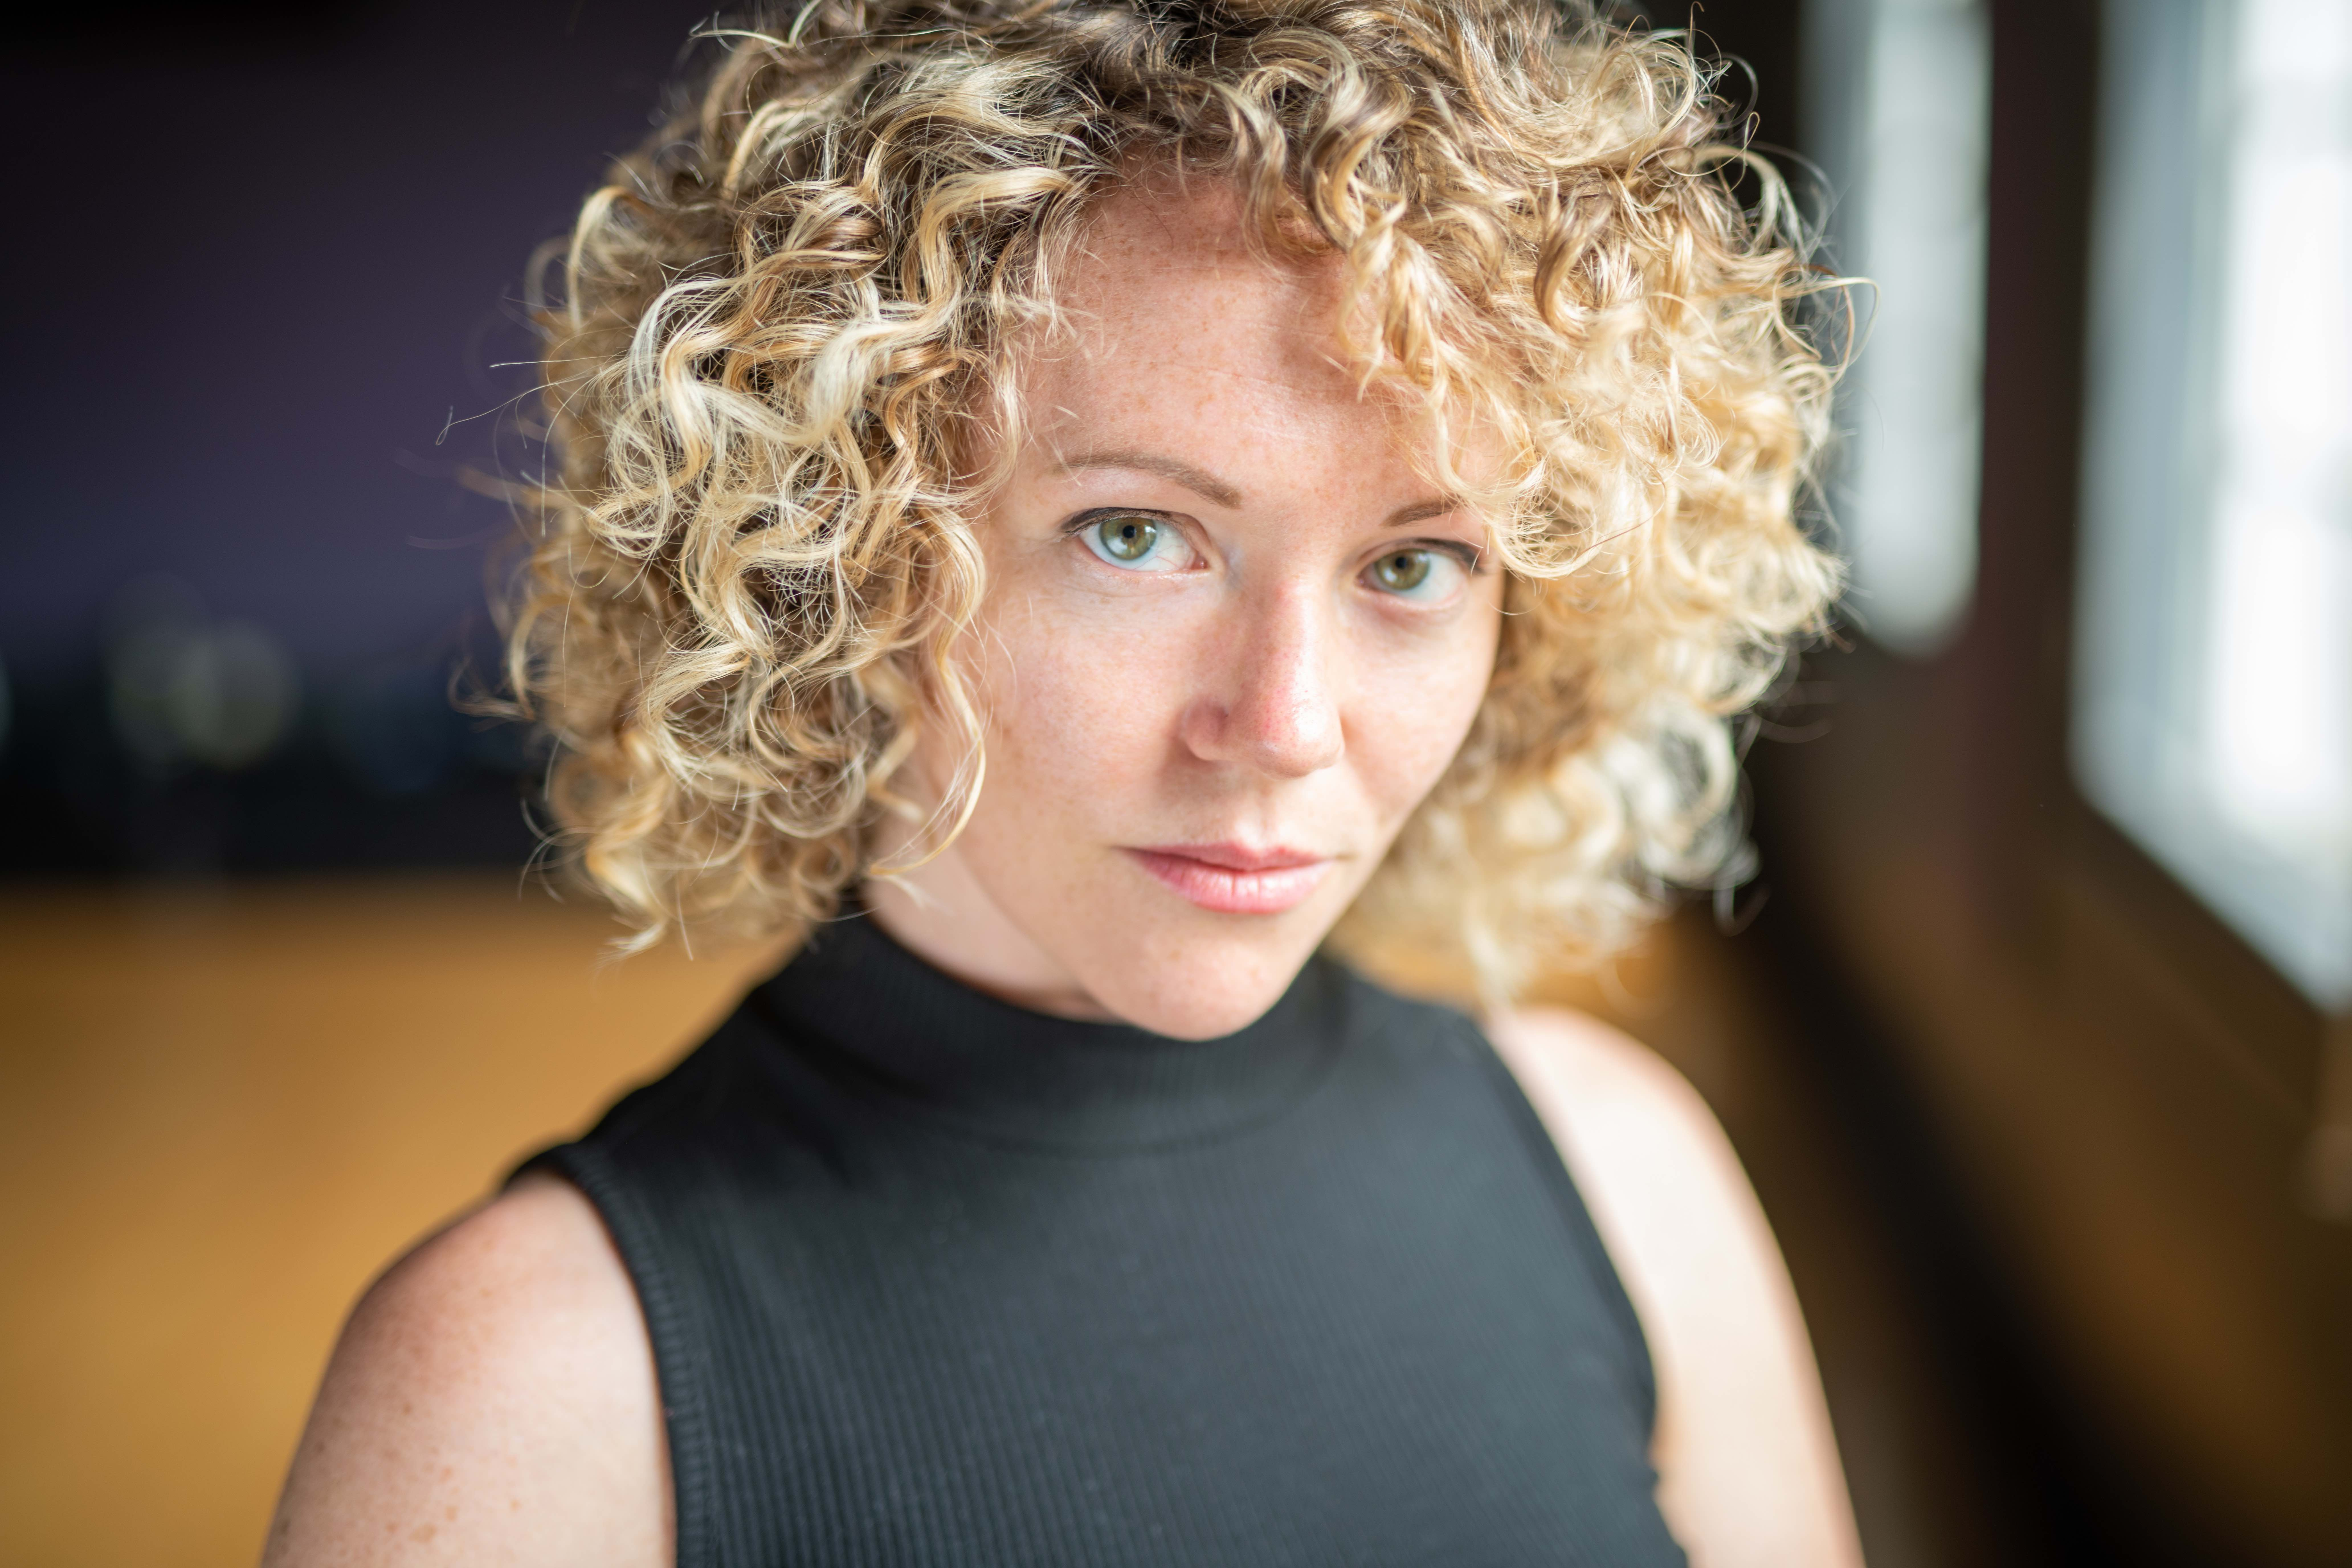 Courtney Abbott, a woman with curly blonde hair and blue eyes.